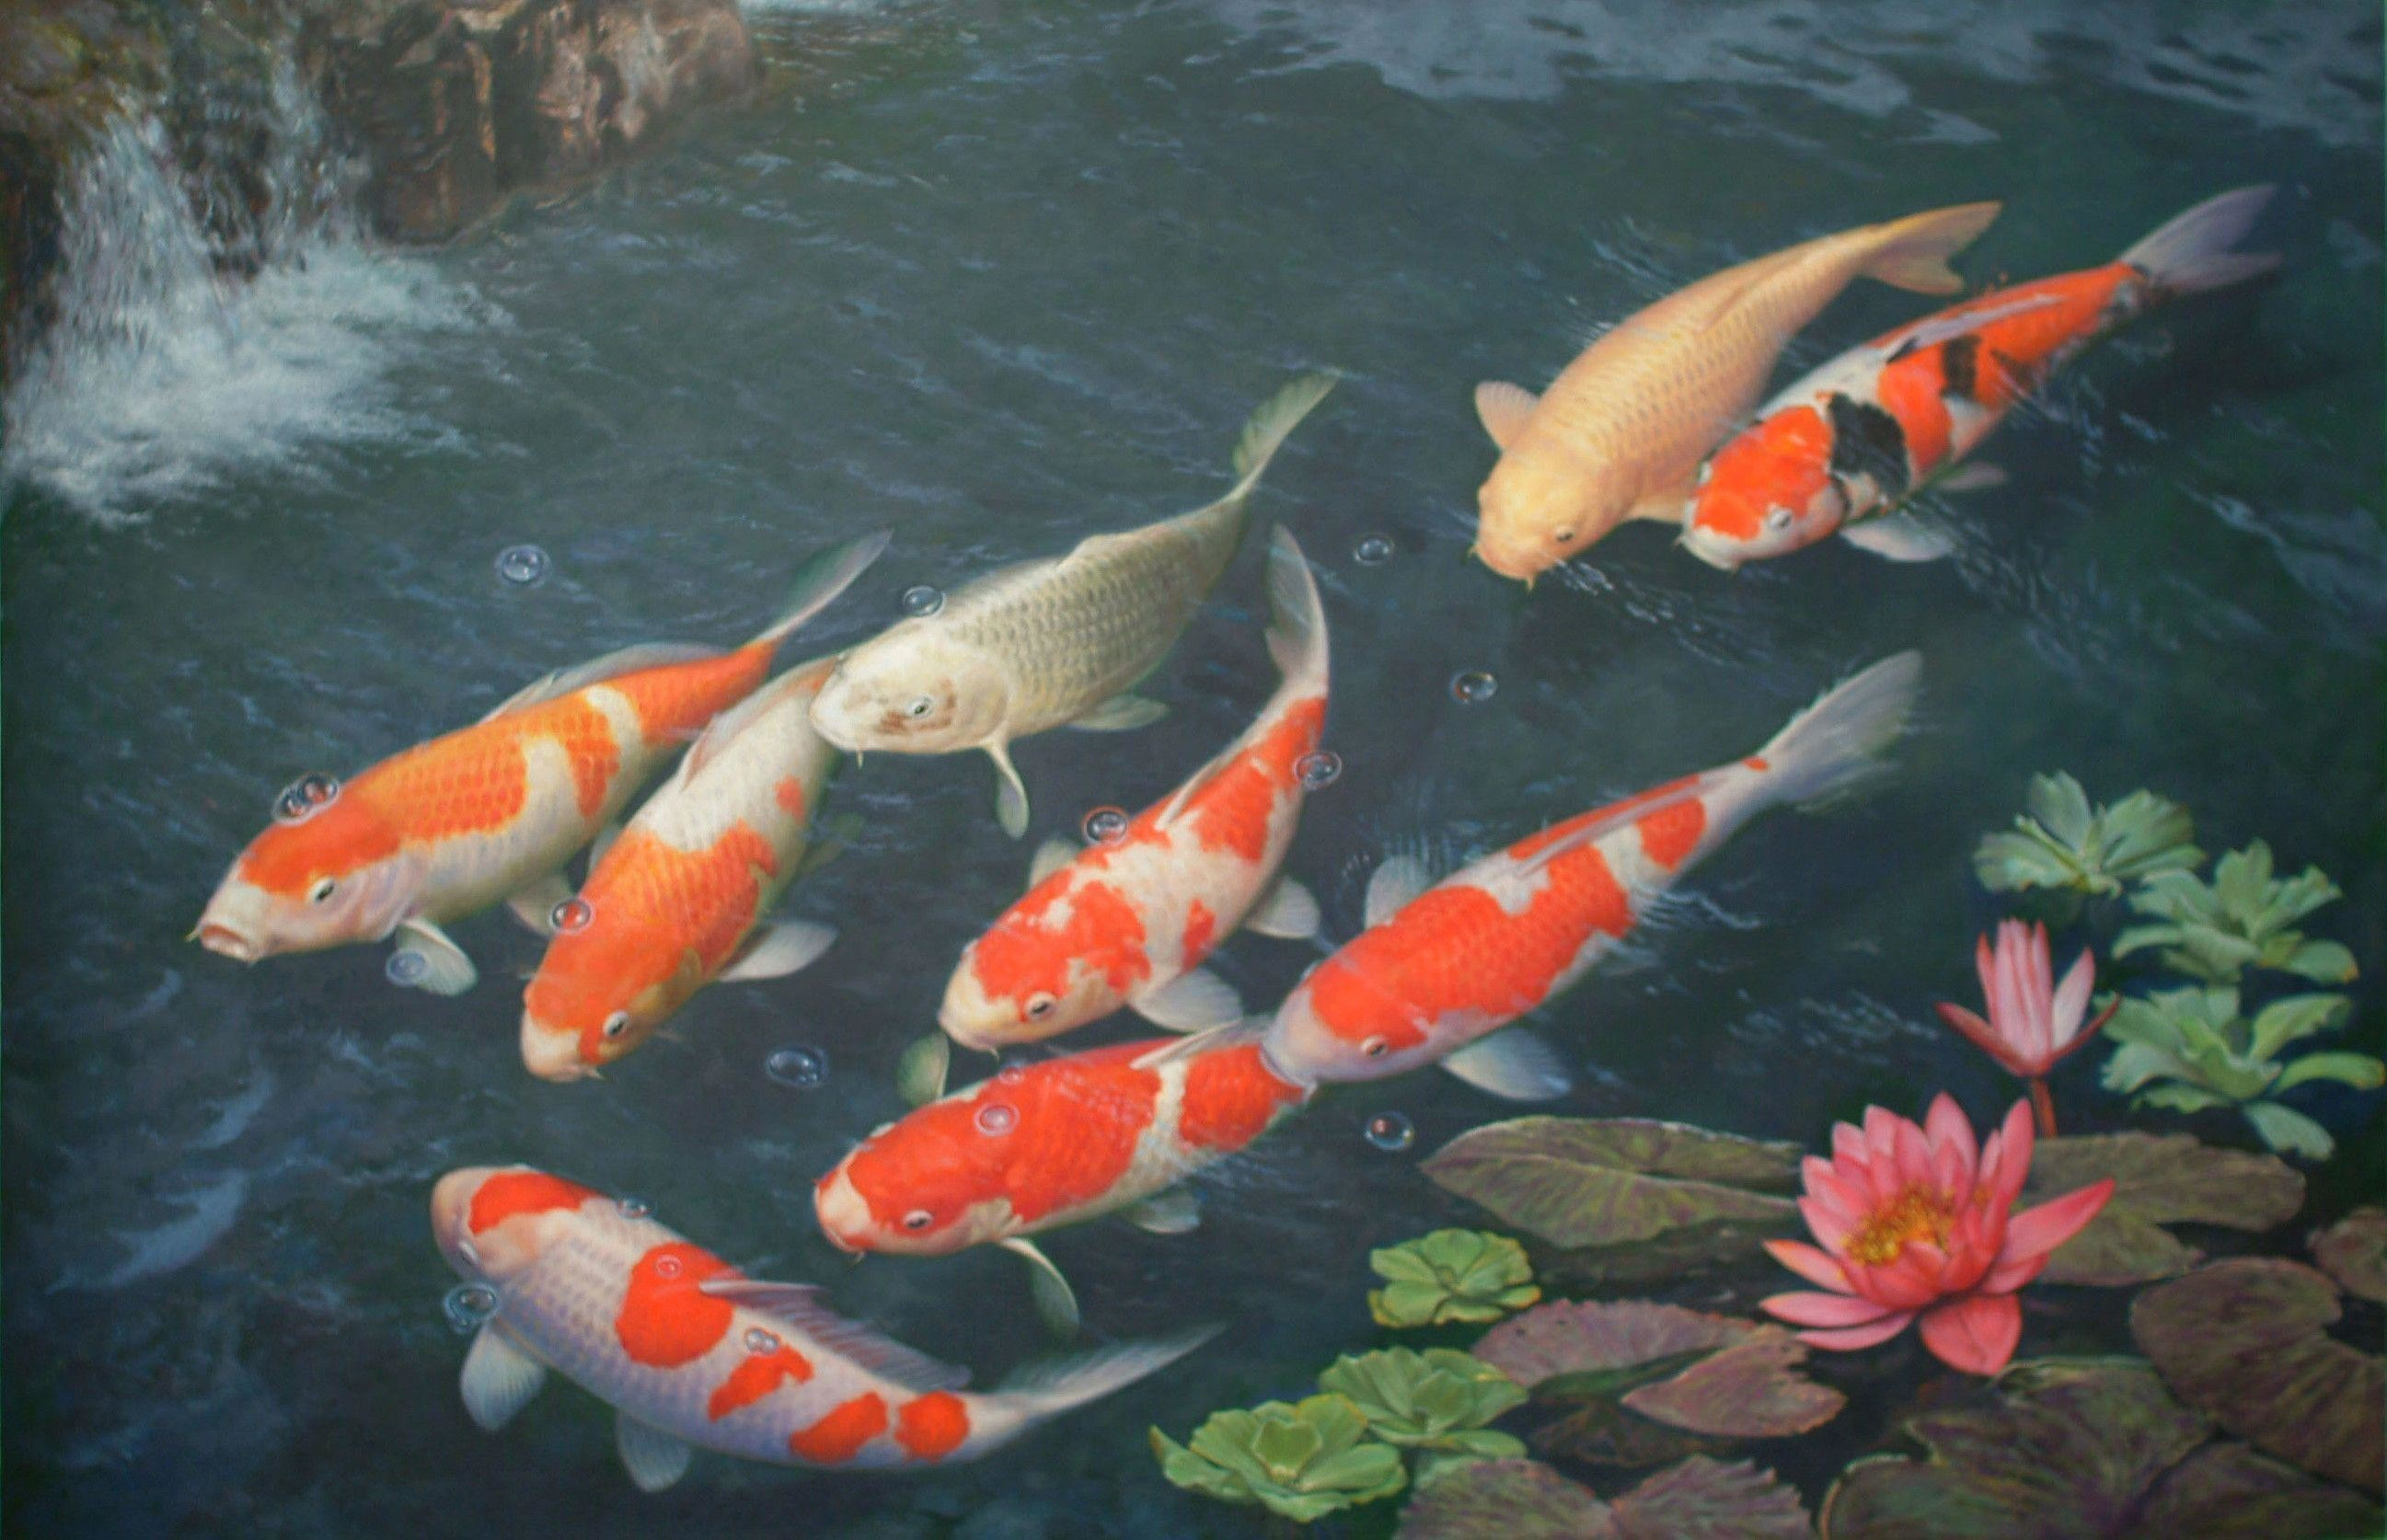 2594x1674 Download Amazing Koi Fish Background Wallpaper #3074 Fish Wallpaper